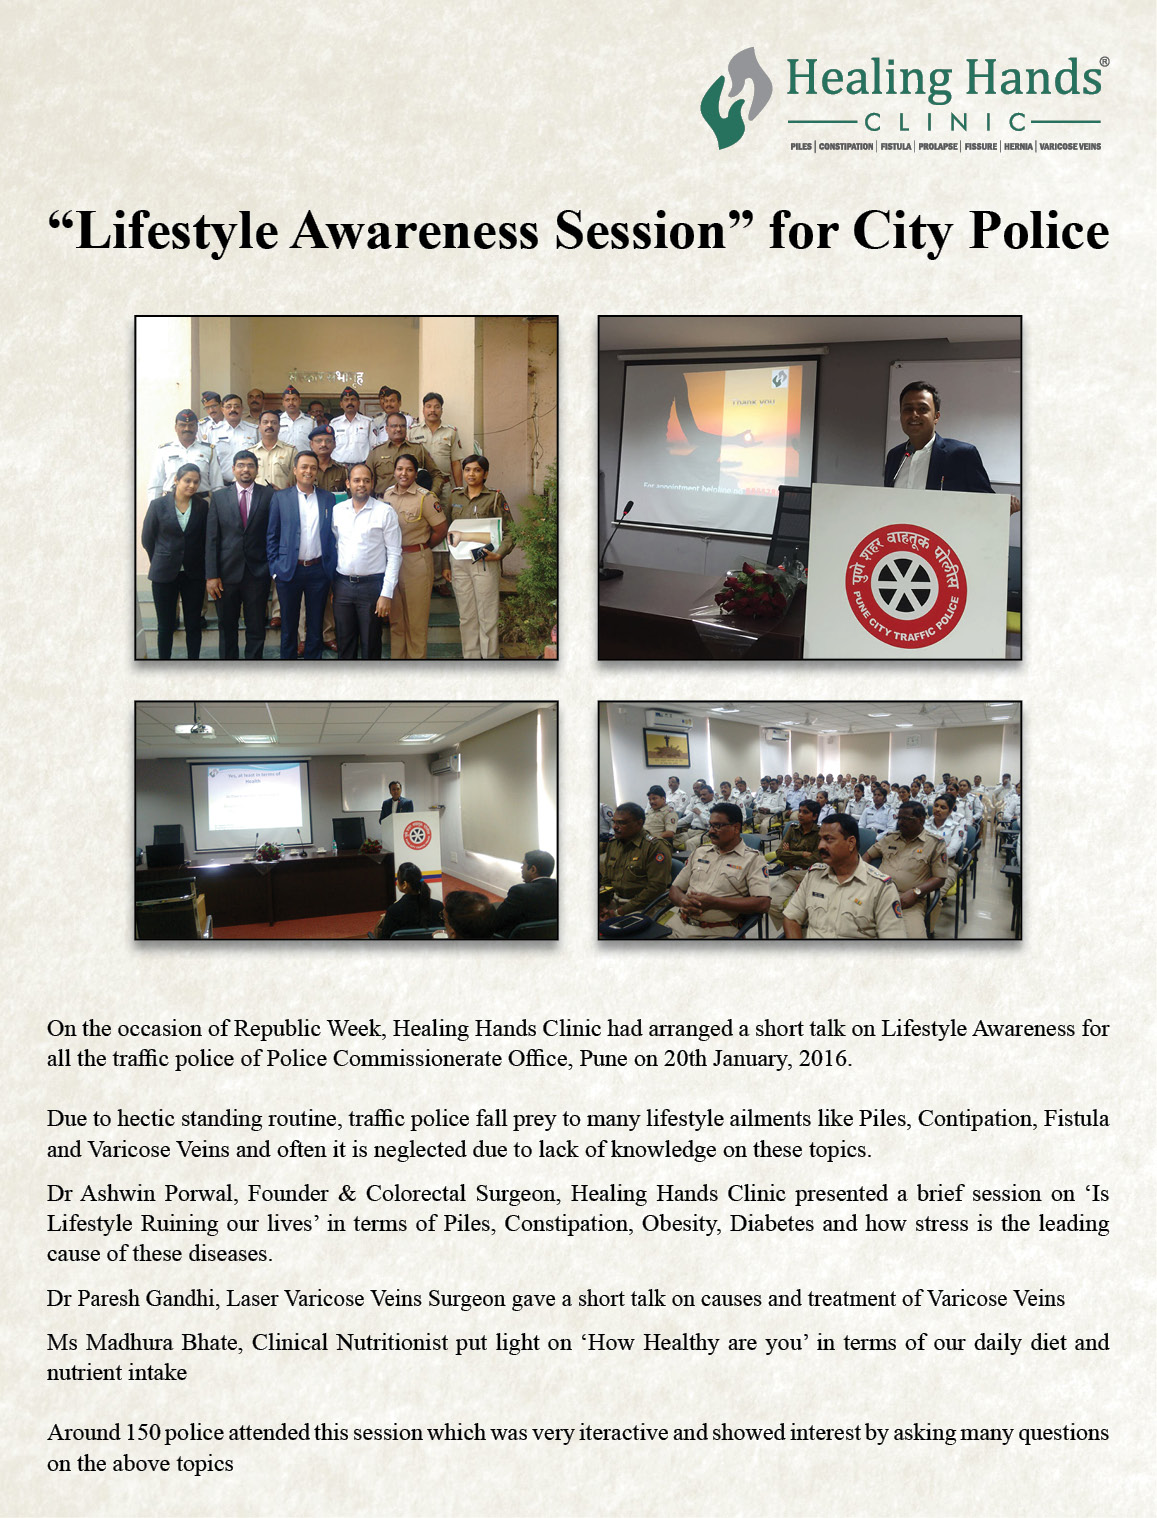 Lifestyle awareness session for city police